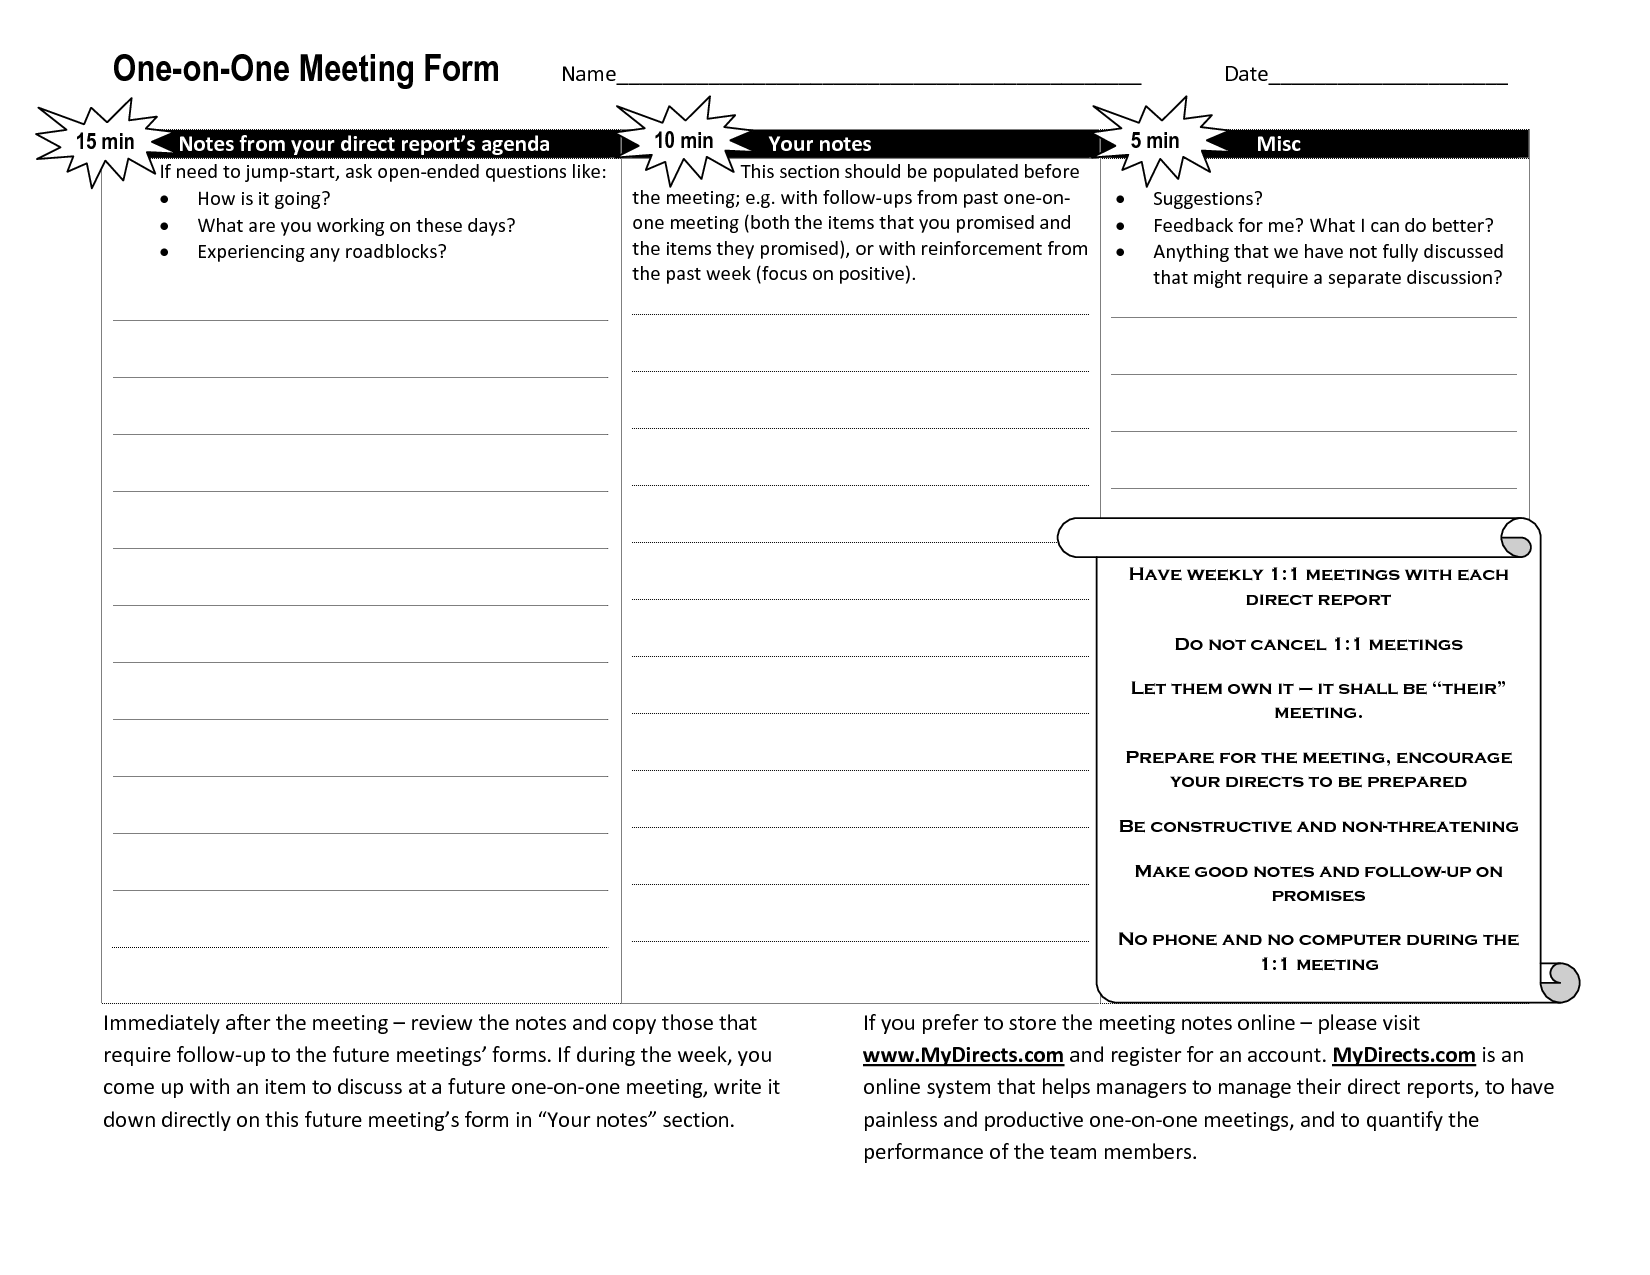 One-on-one meeting agenda template  Agenda template, Meeting